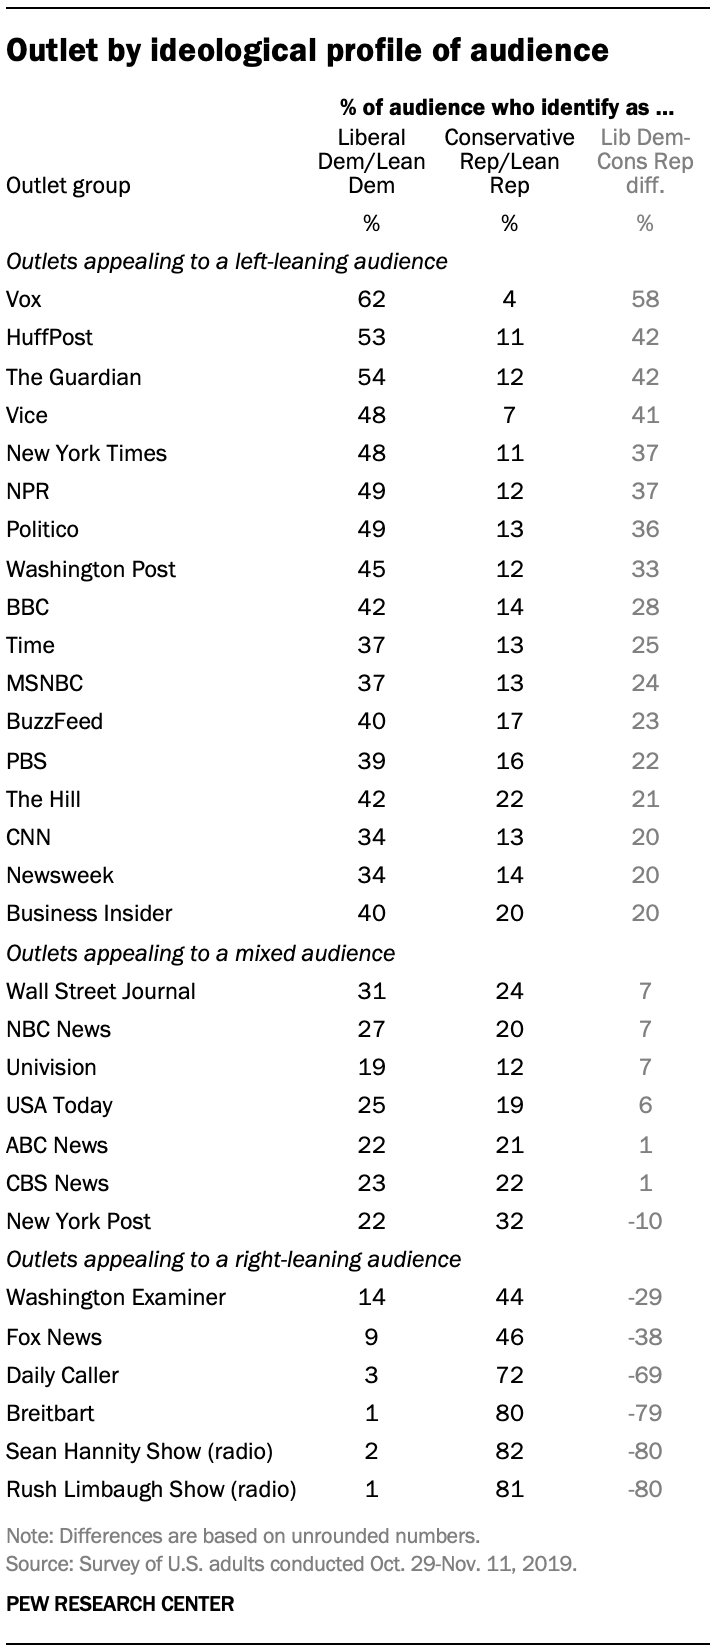 Outlet by ideological profile of audience